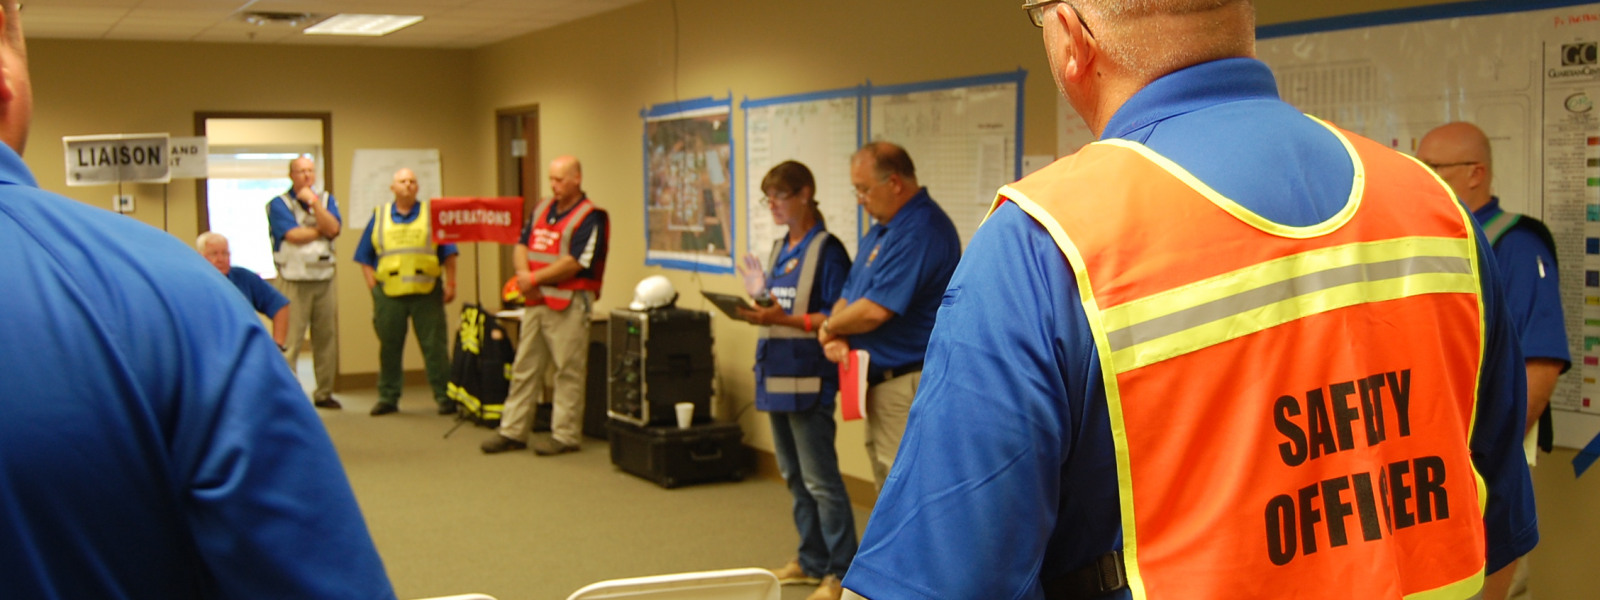 Earthquake Response - Incident Management Team